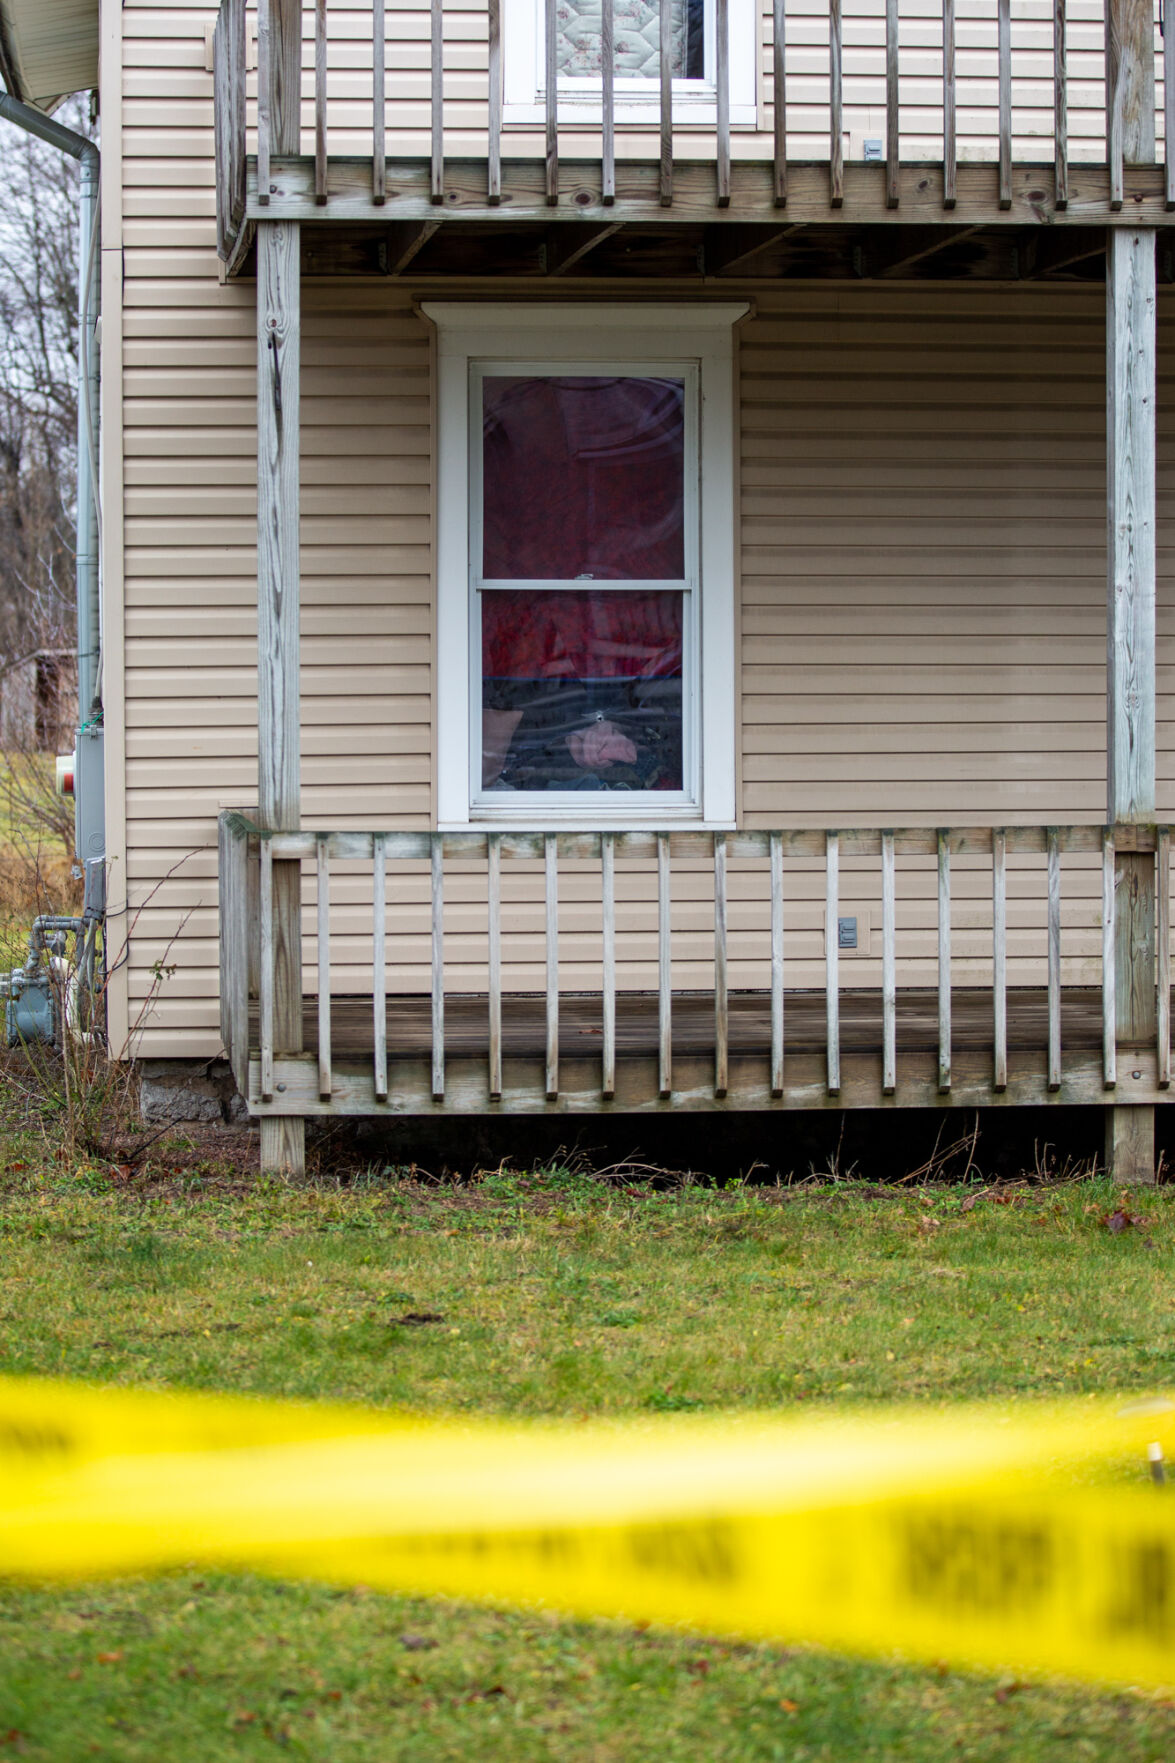 Shooting incident investigated